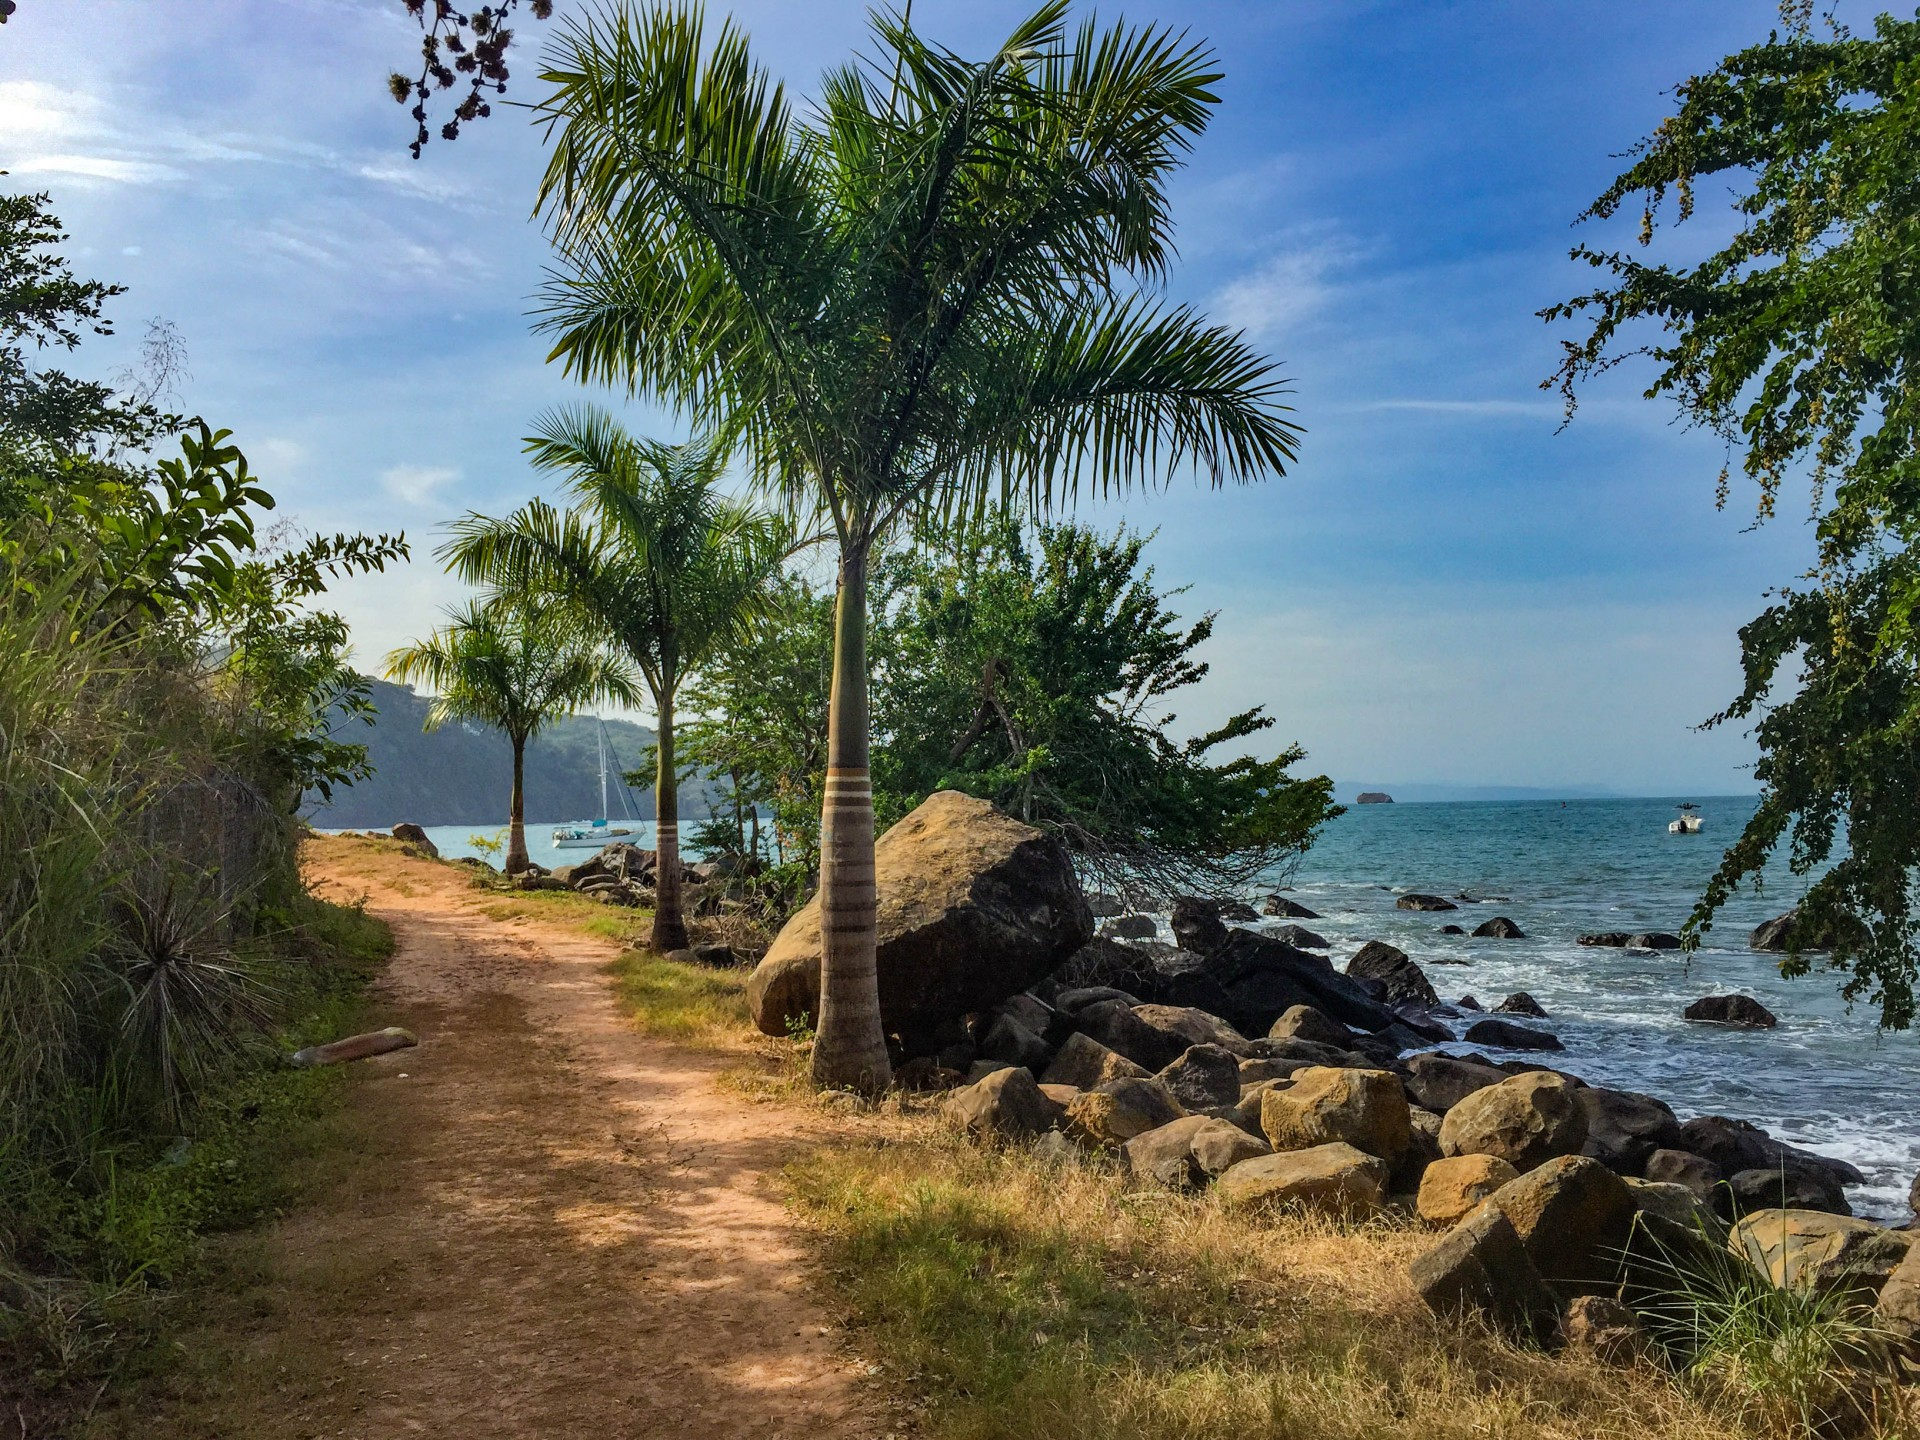 The Chacala path, with a view to our steady vessel in the palms.